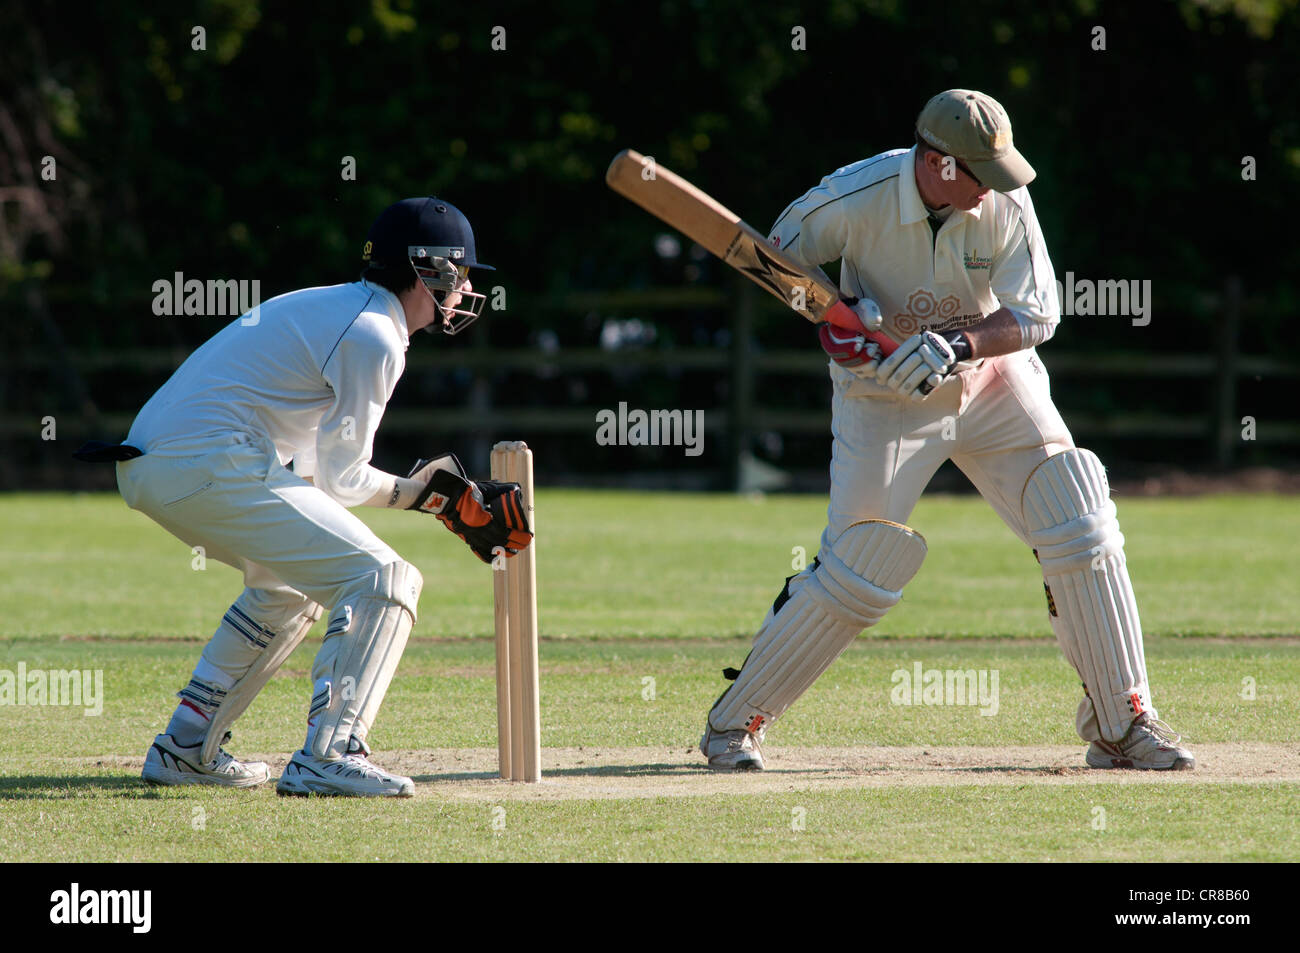 Village cricket at Great Alne - Stock Image